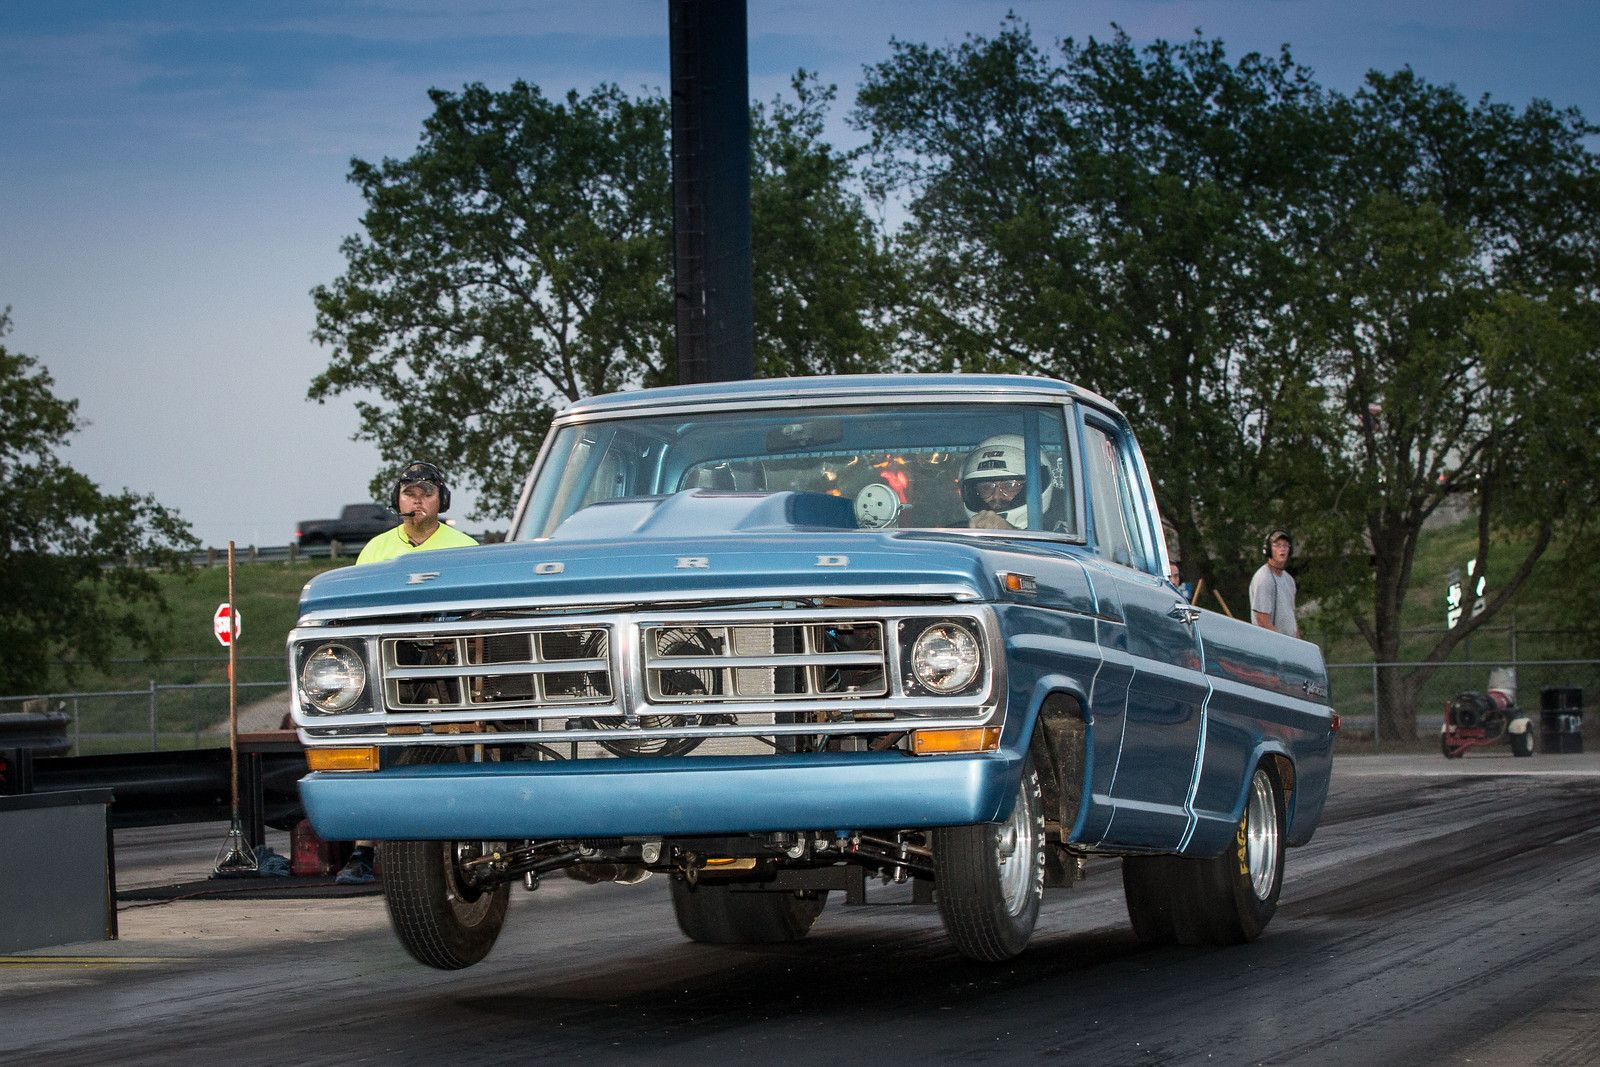 Keith Stanley's Ford Drag Truck